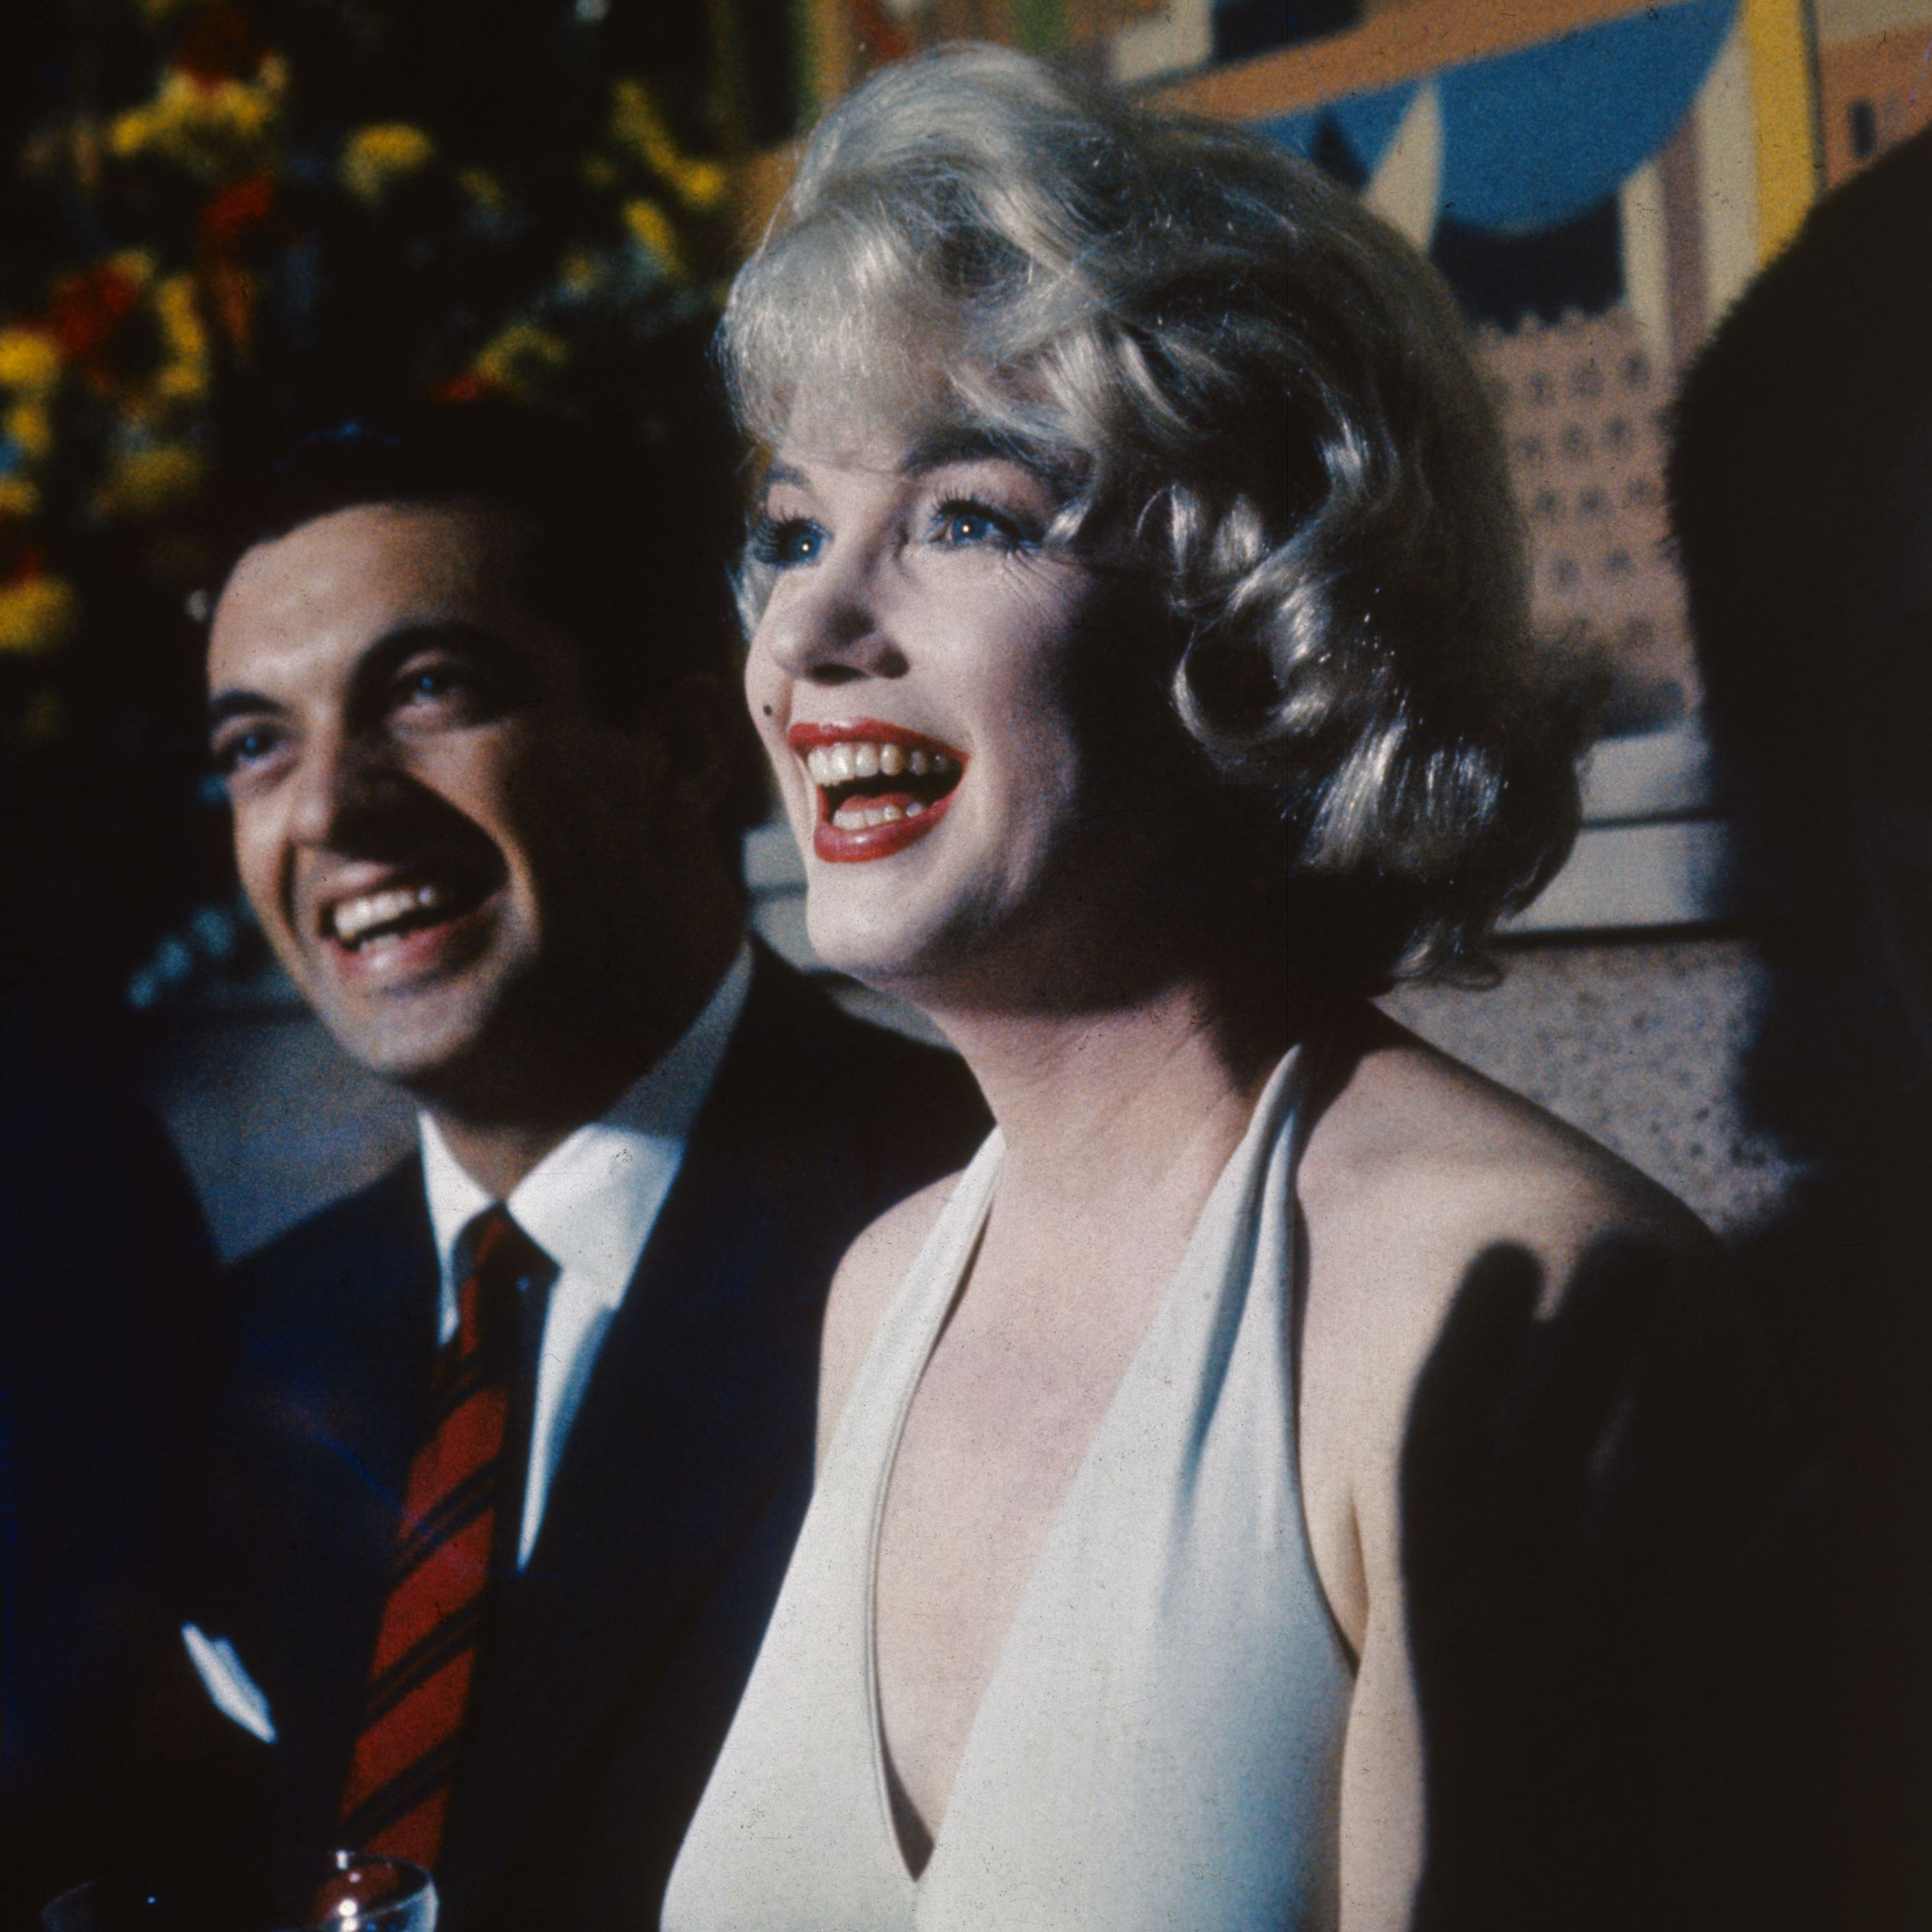 Marilyn Monroe, who starred in such classic films as The Seven Year Itch, Some Like It Hot and Let's Make Love (with Frankie Vaughan, pictured), remains a global beauty icon today, 50 years after her death.